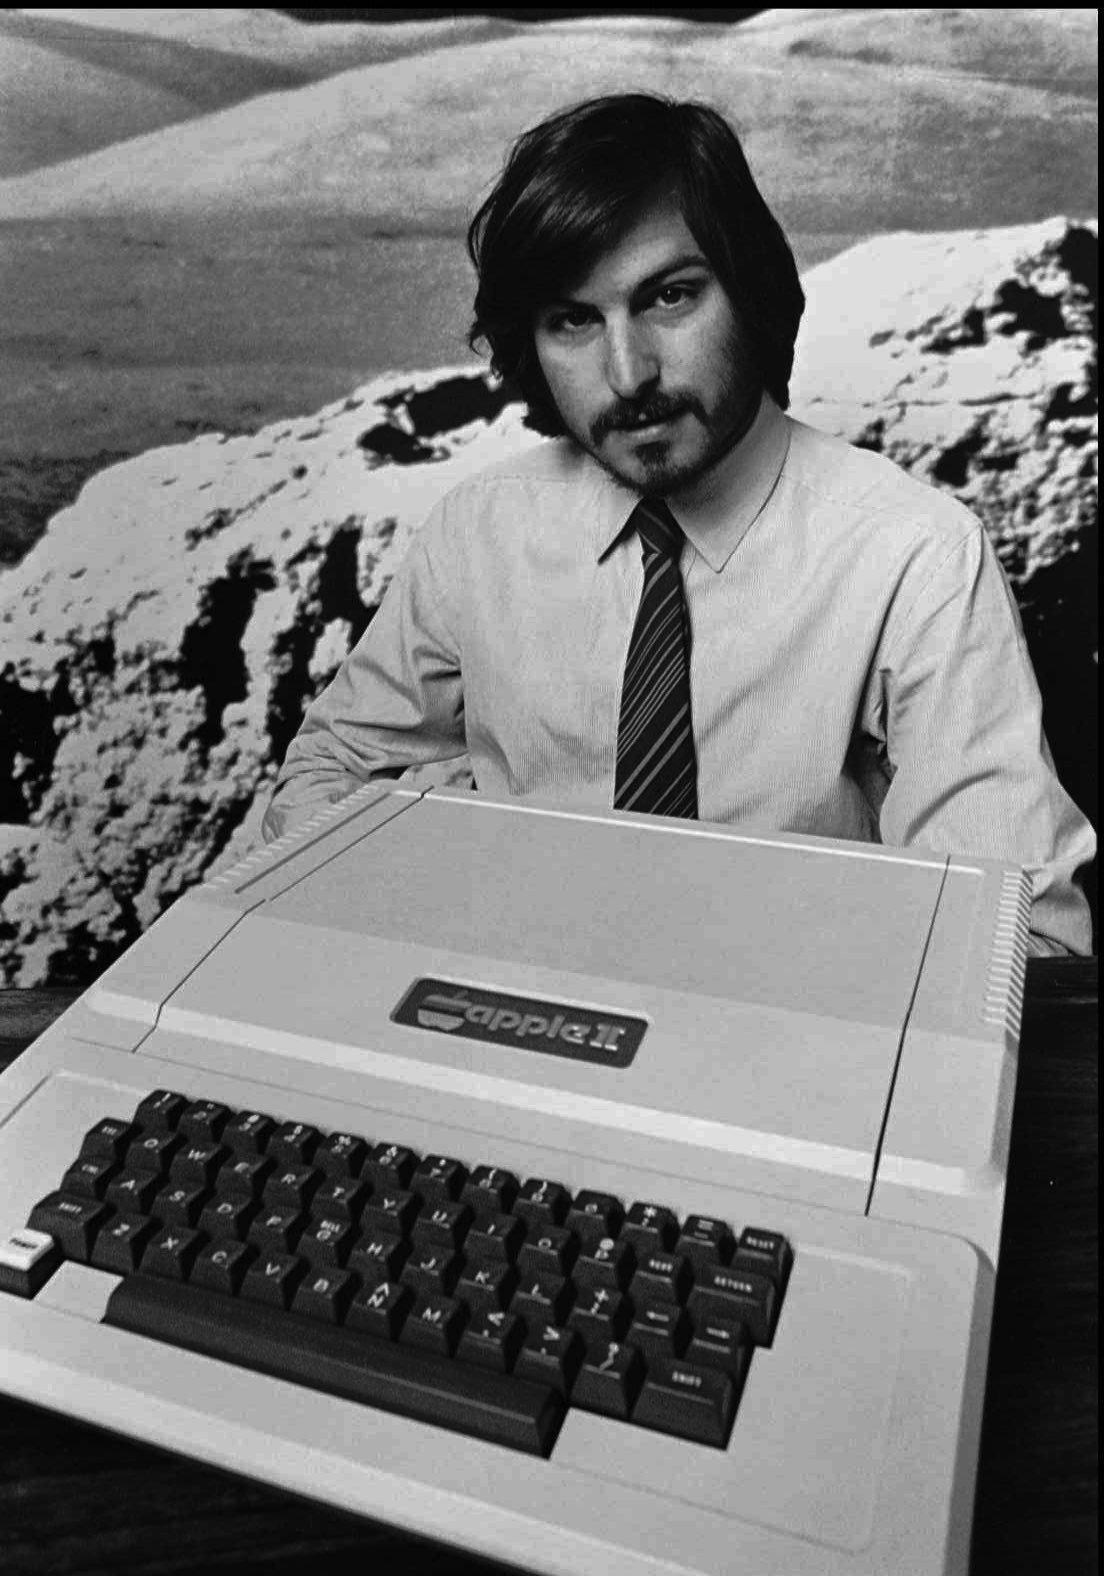 steve-jobs-con-il-computer-apple-ii.jpg